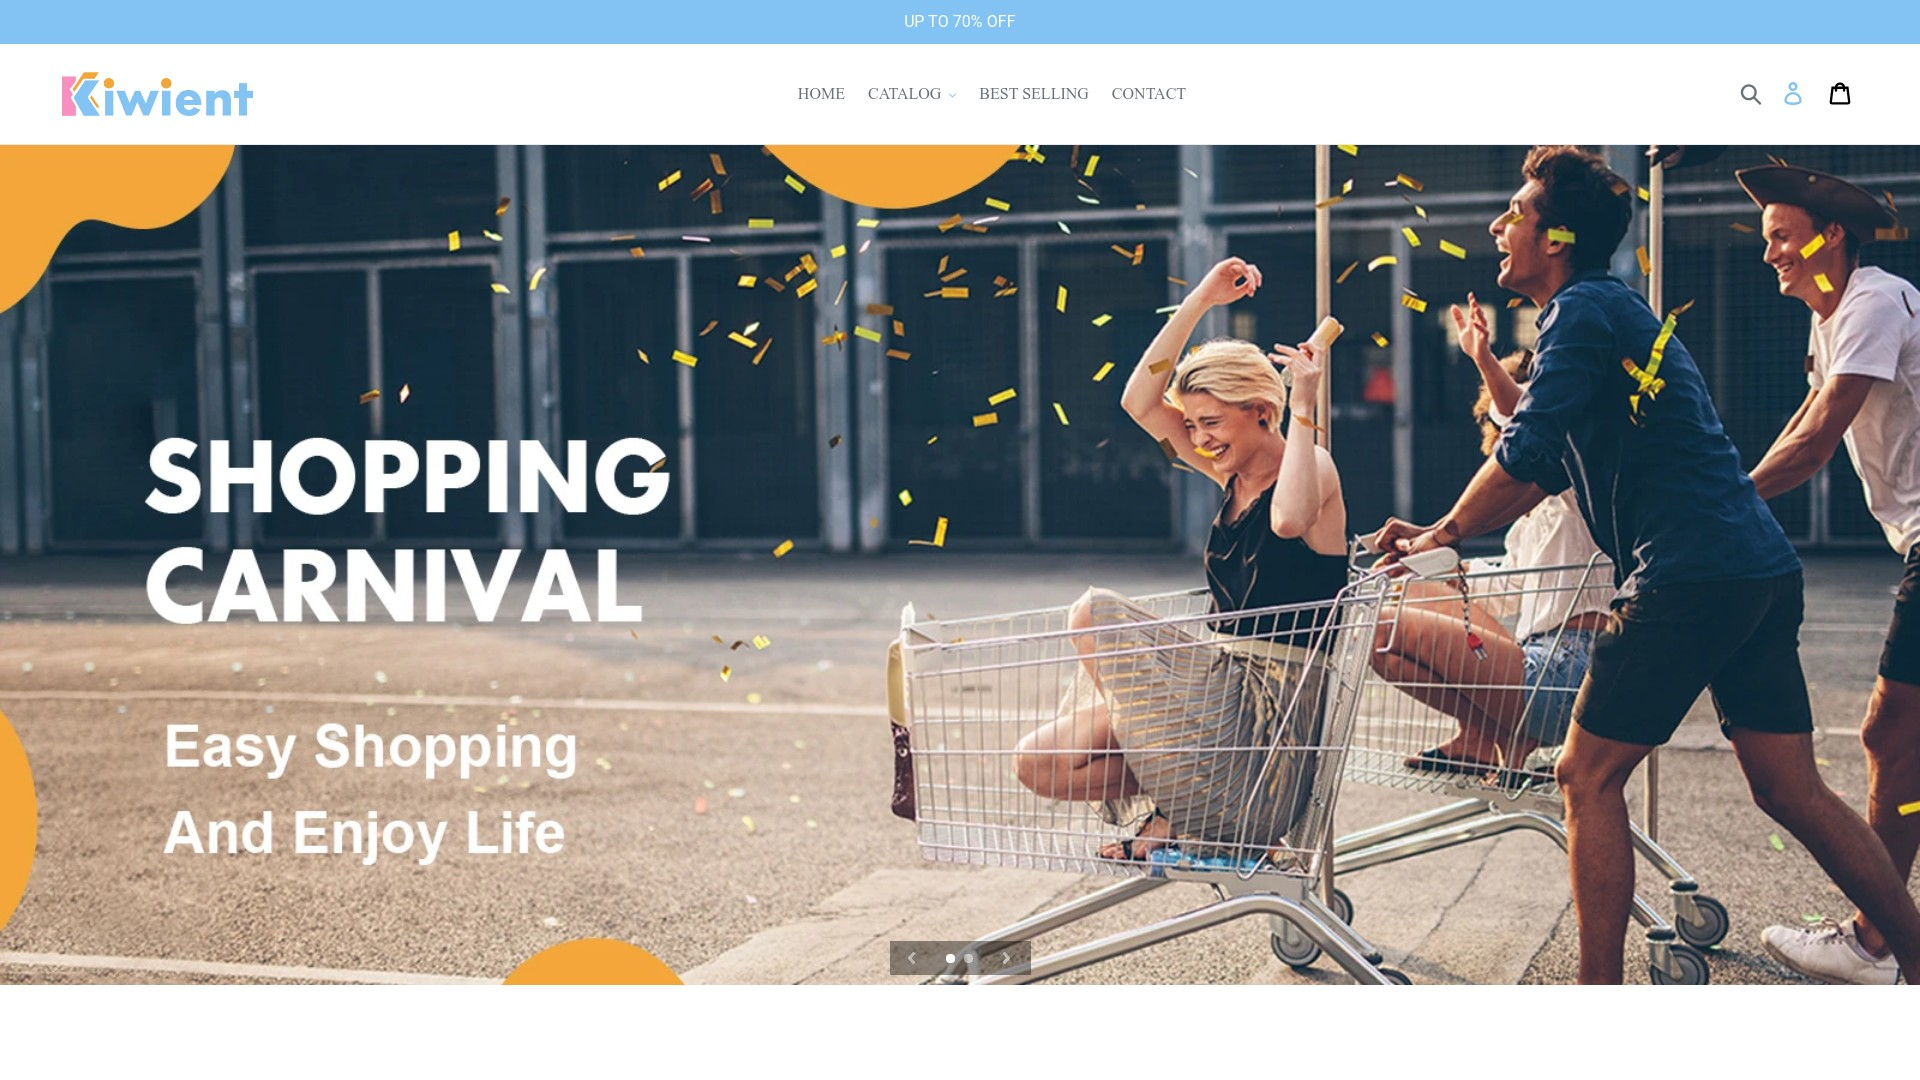 Is Kiwient a Scam? Review of the Online Store